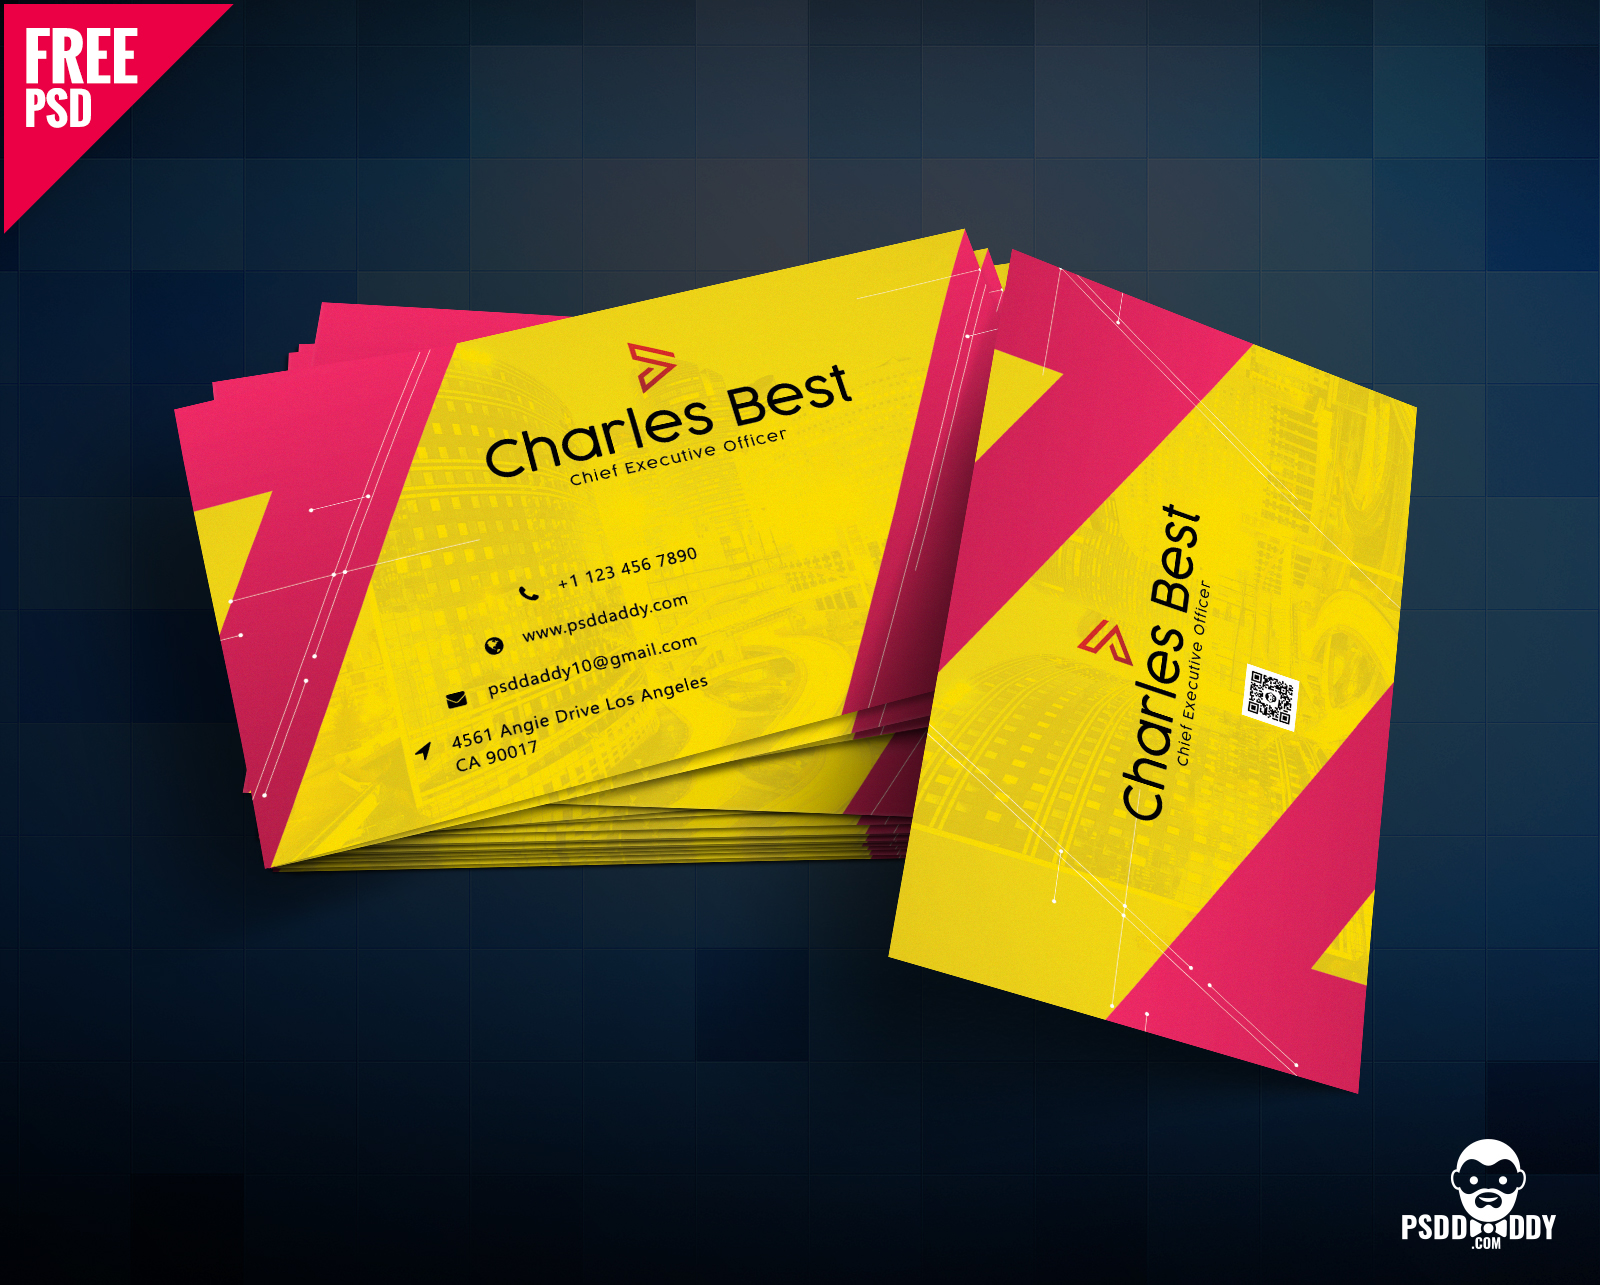 Creative business card template psd free download psddaddy business card design business card design templates business card dimensions business card holder cheaphphosting